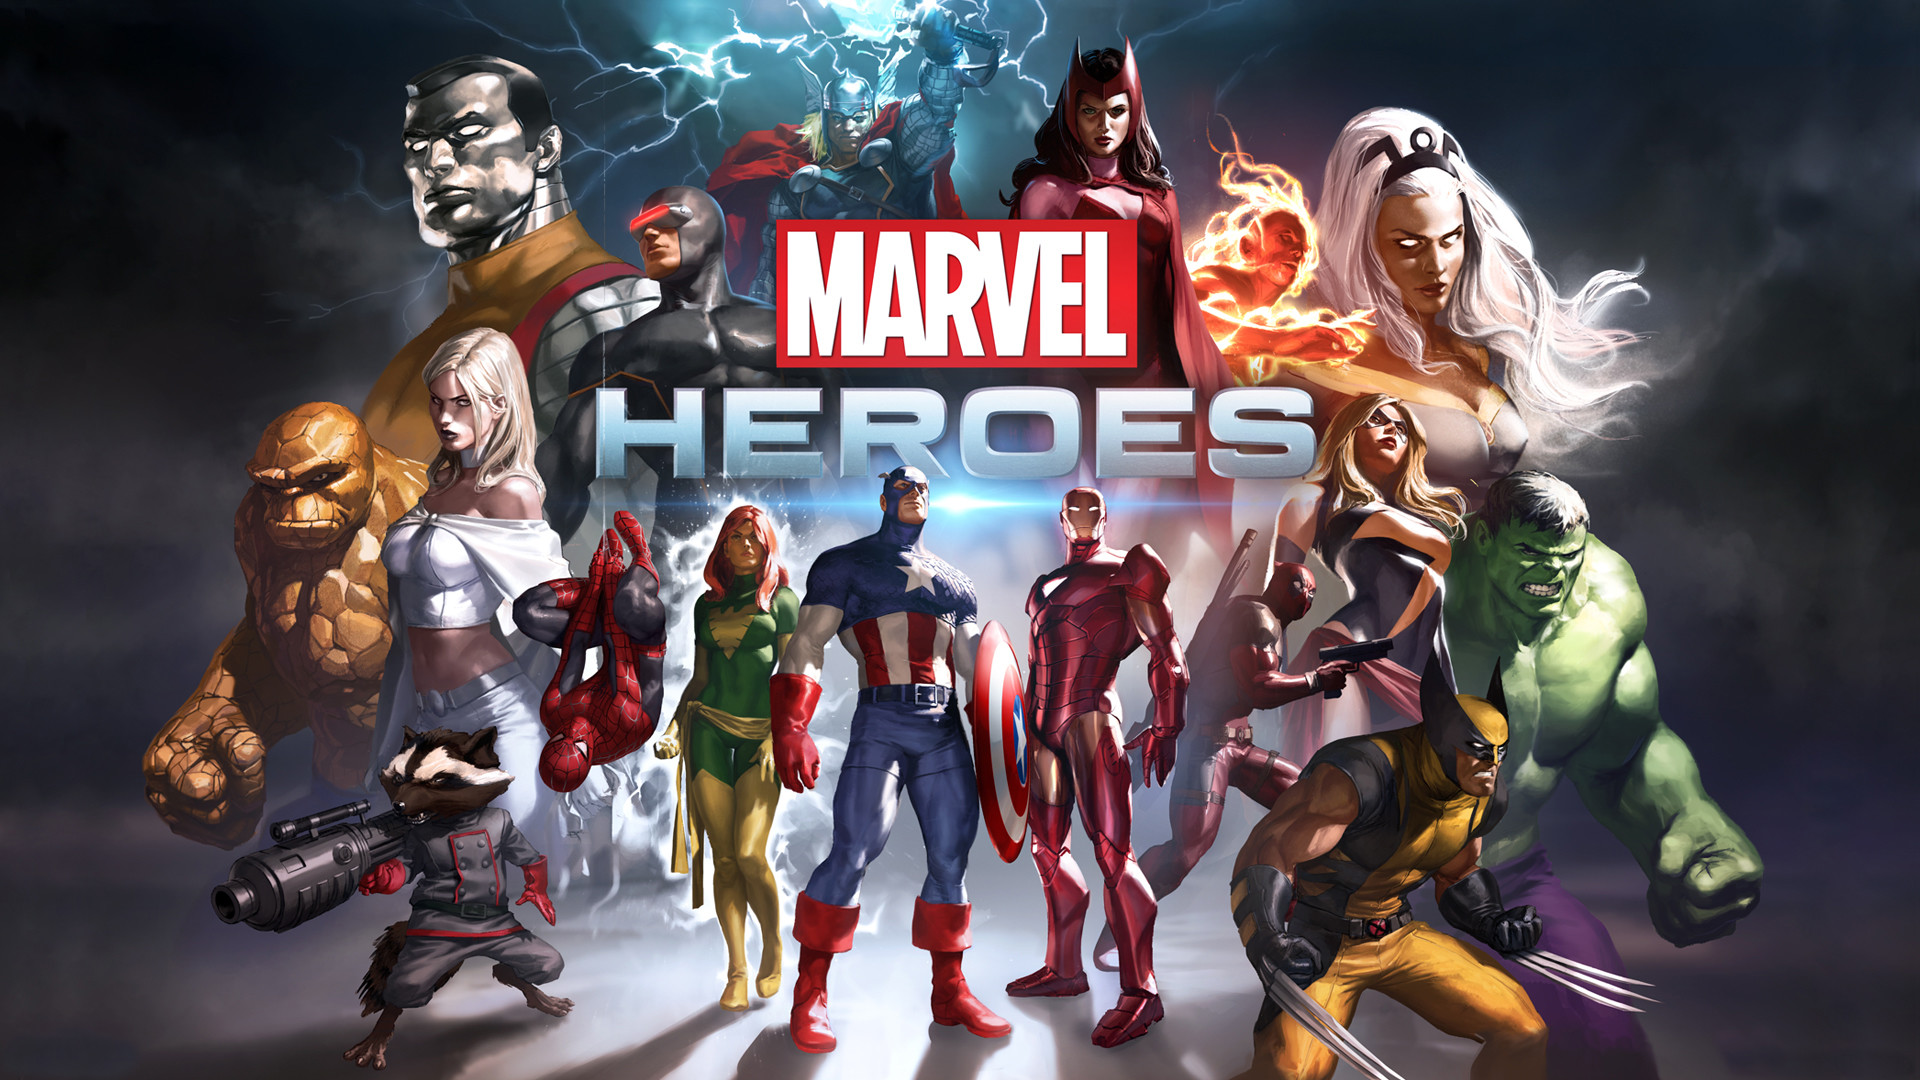 Res: 1920x1080, Marvel Heroes Game